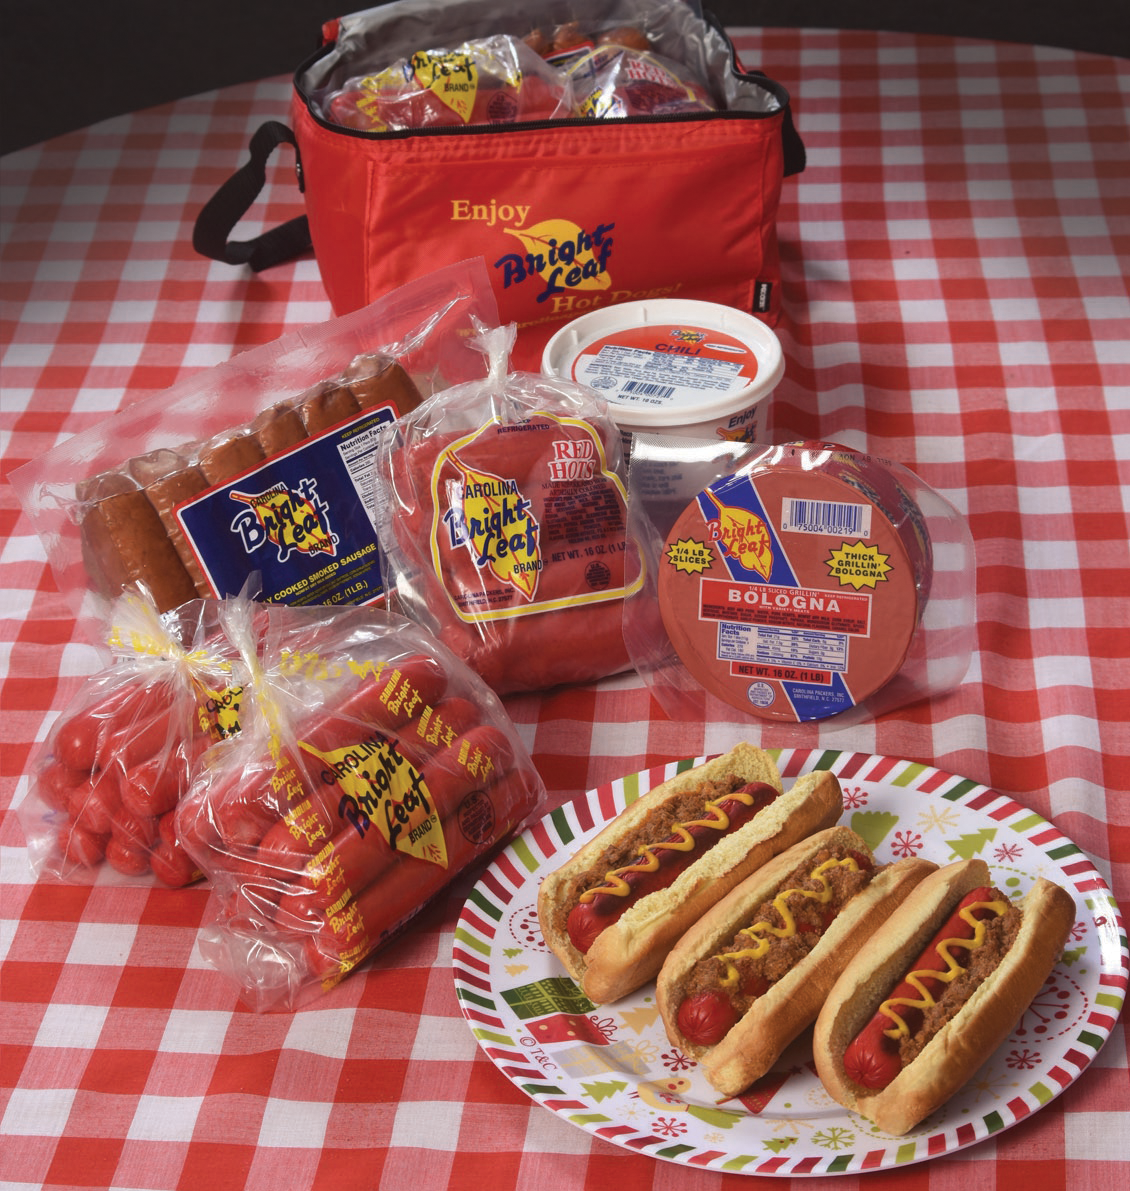 The Bright Leaf Holiday Classic Gift Bag (2- Hot Dogs, 1- Red Hot, 1-Smoked Sausage, 1-chili, 1-Thick Grillin' Bologna)